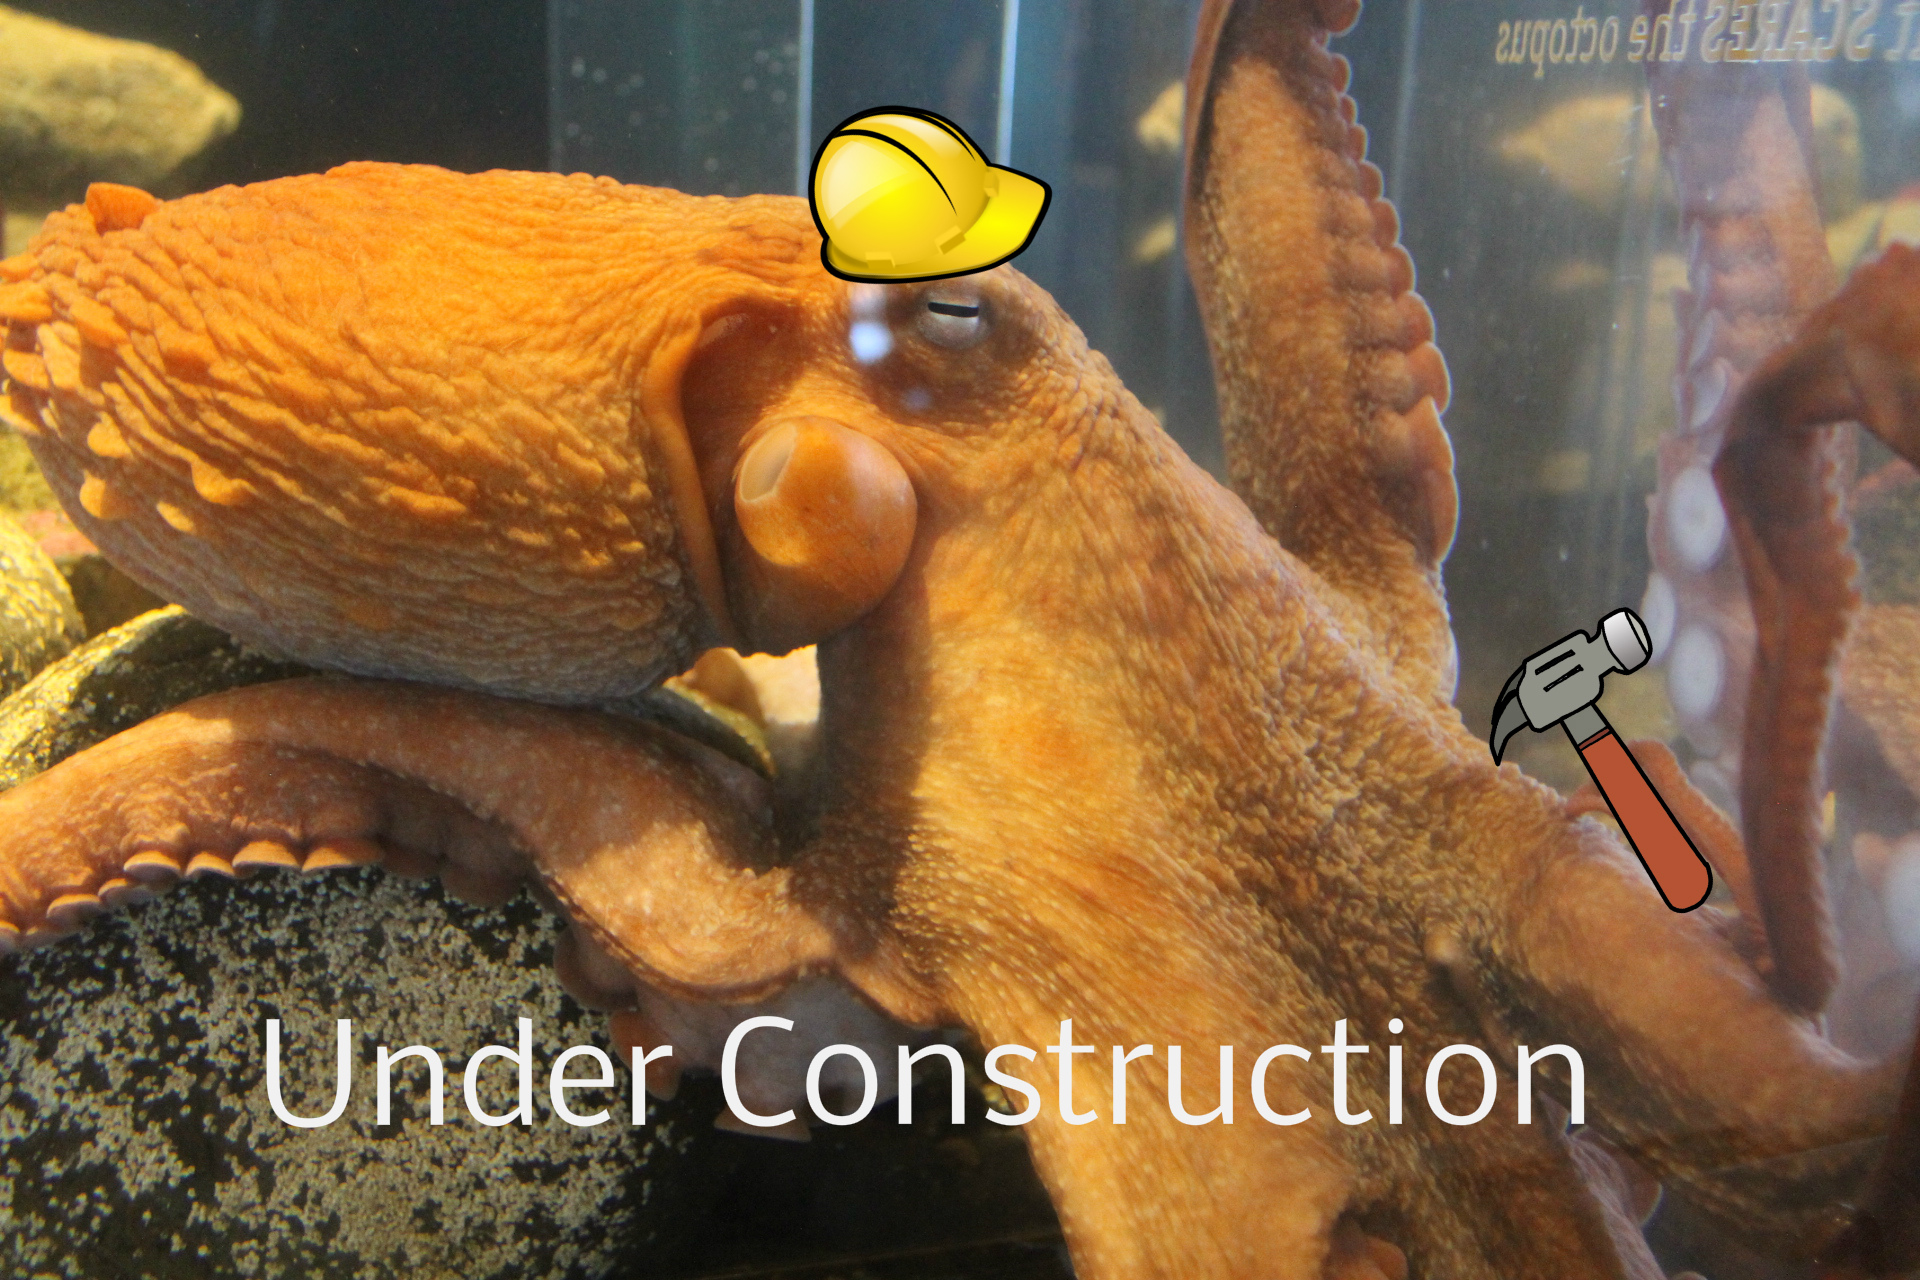 Under Construction - Octopus wearing hard hat and weilding a hammer.